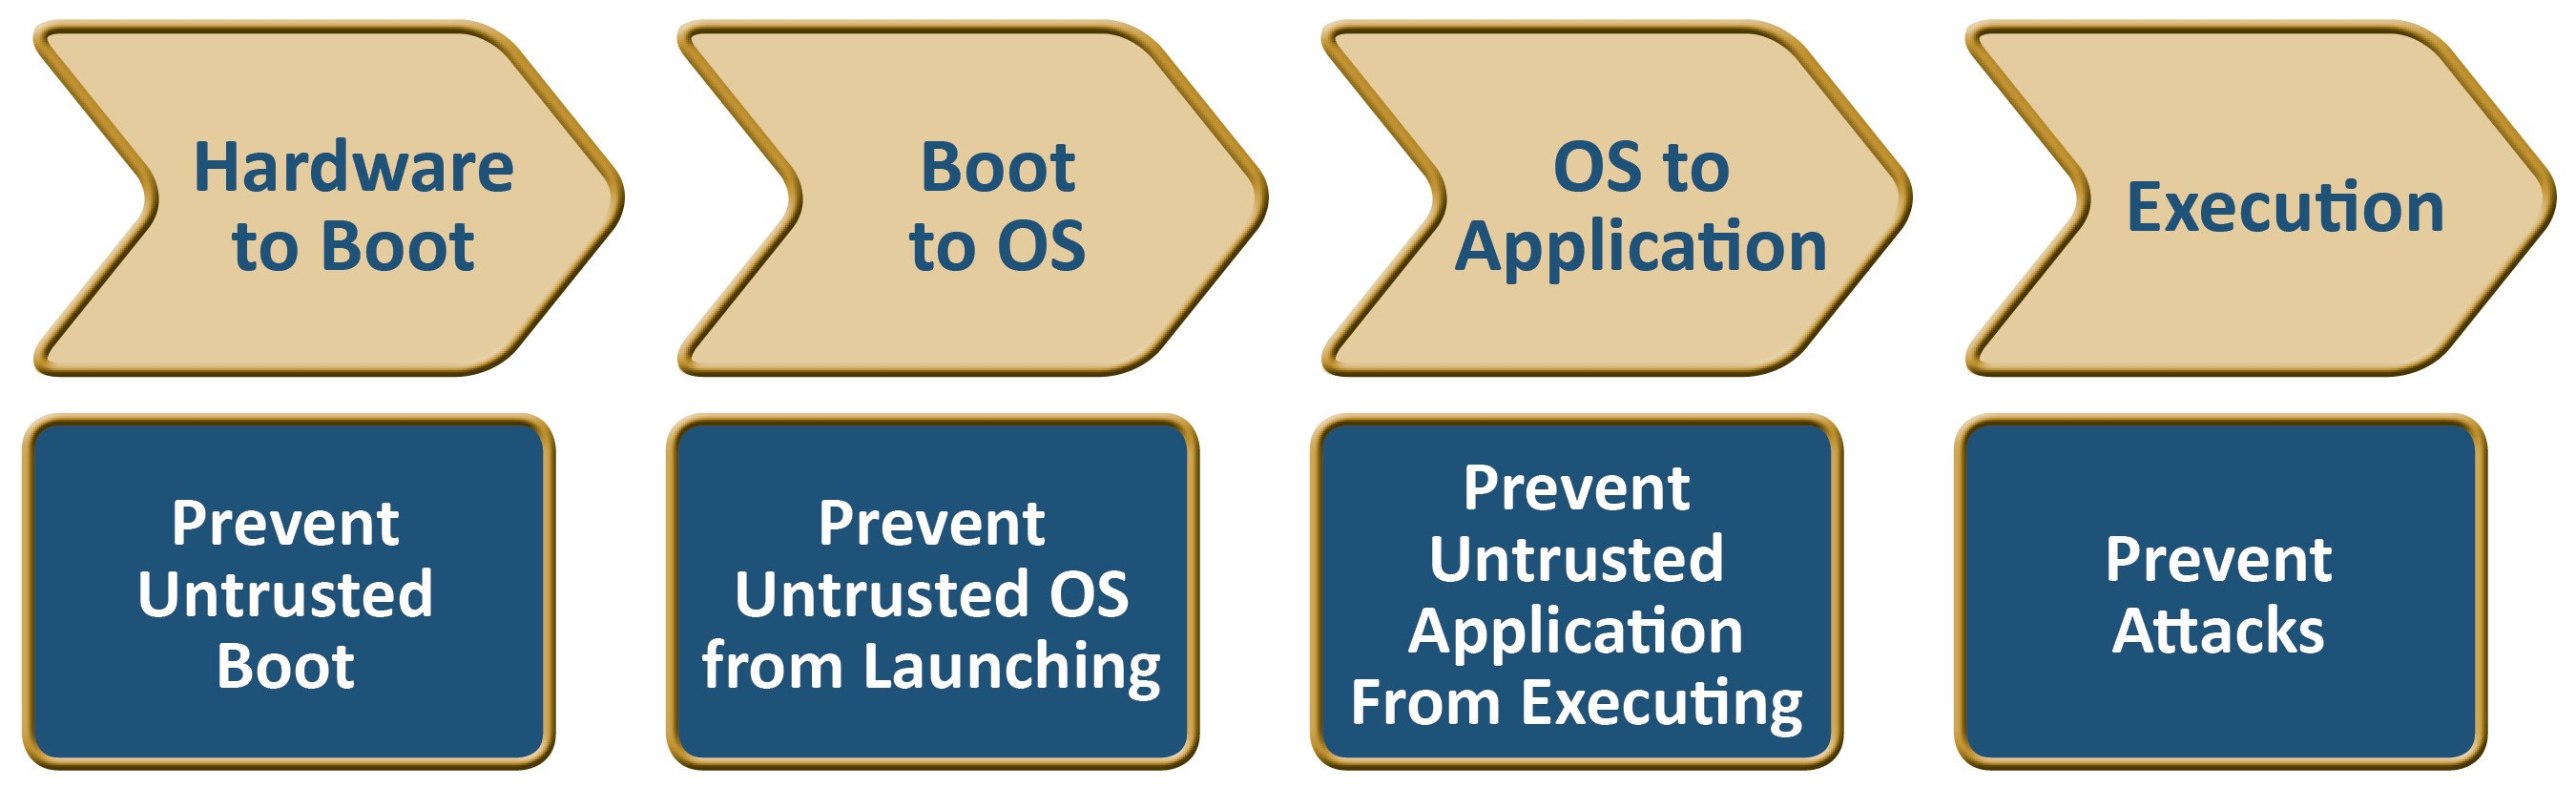 Floodgate Secure Boot Floodgate Secure Boot Overview Floodgate Secure Boot provides a critical security capability for embedded devices by ensuring that only validated code from the device OEM is